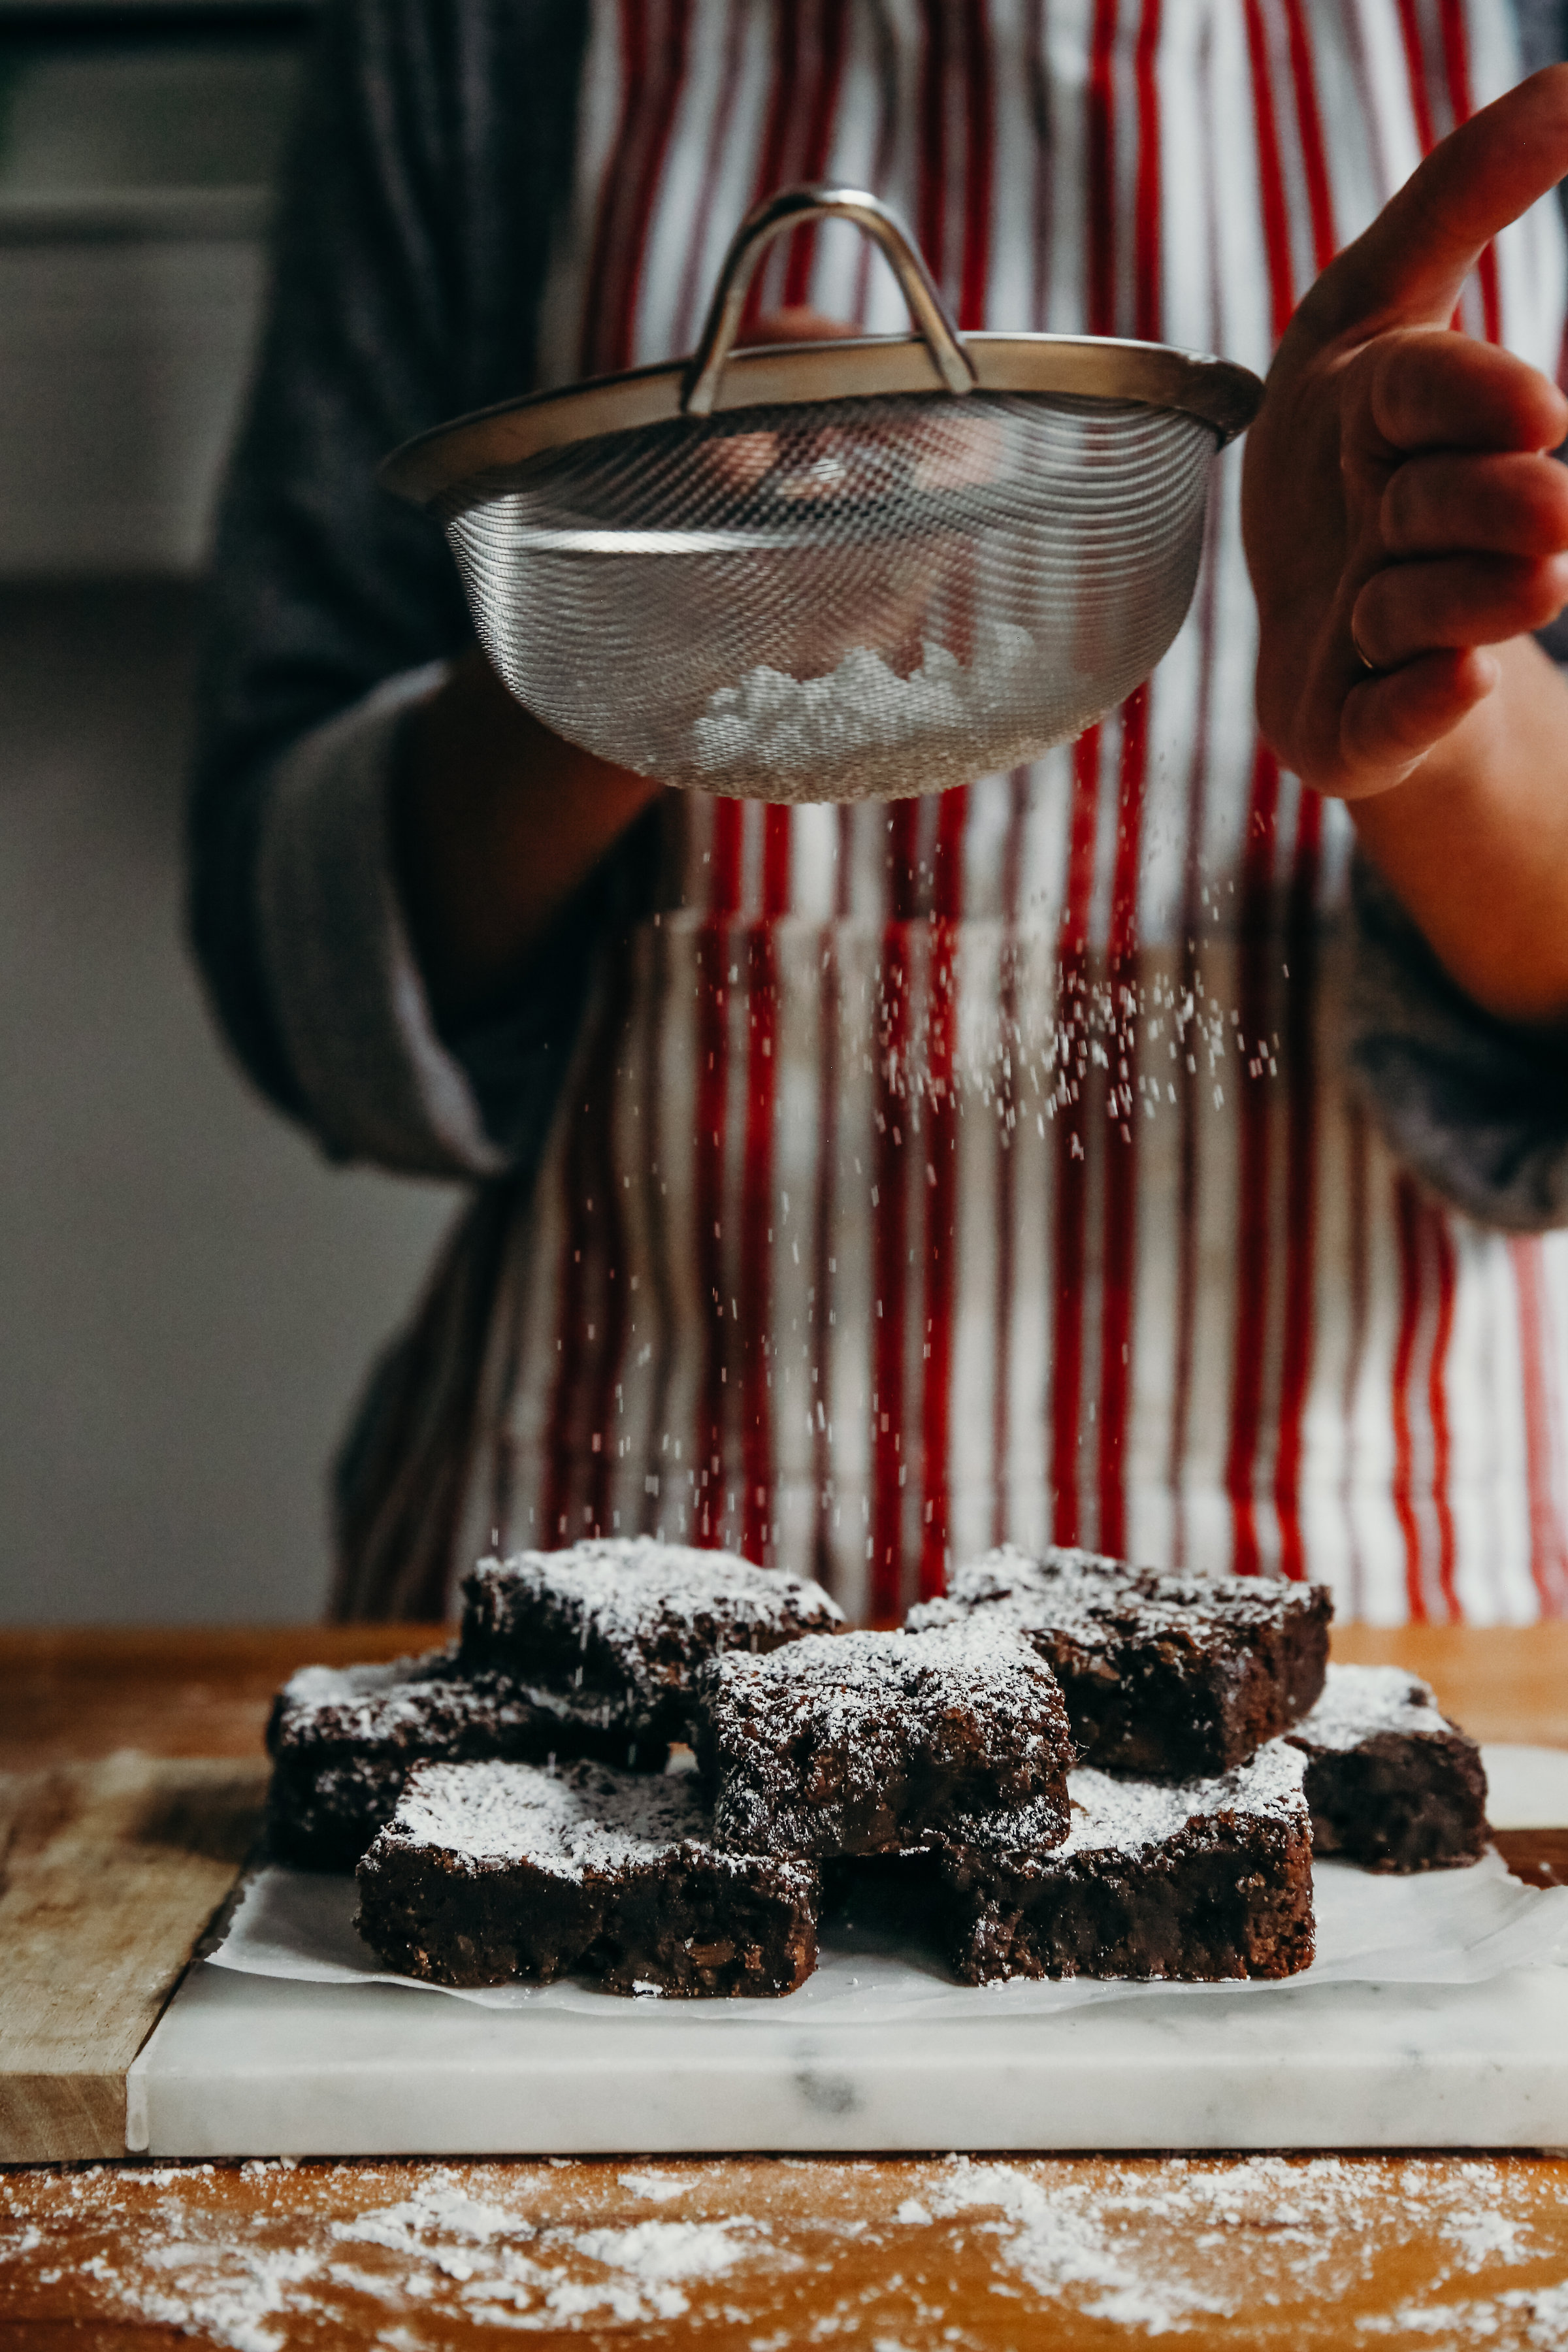 Brownies and Kitchen Baking | Food Photography | Hillary Jeanne Photography